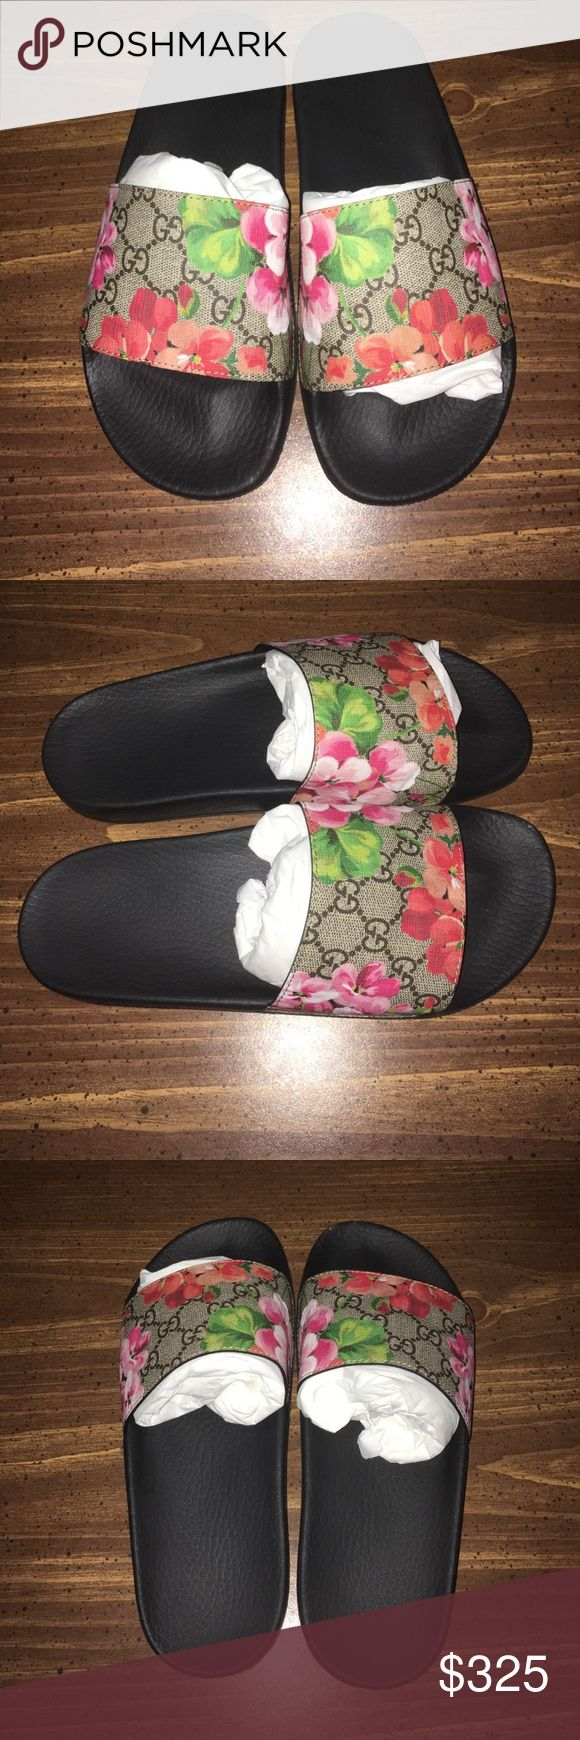 🆕 Gucci Supreme Blooms Slide Sandal Brand New Gucci Supreme Slide Sandal with a floral and logo print strap defines a well-cushioned sandal featuring a molded rubber footbed for all-day comfort. Textile or synthetic upper/rubber lining and sole. Made in Italy. Gucci Shoes Slippers